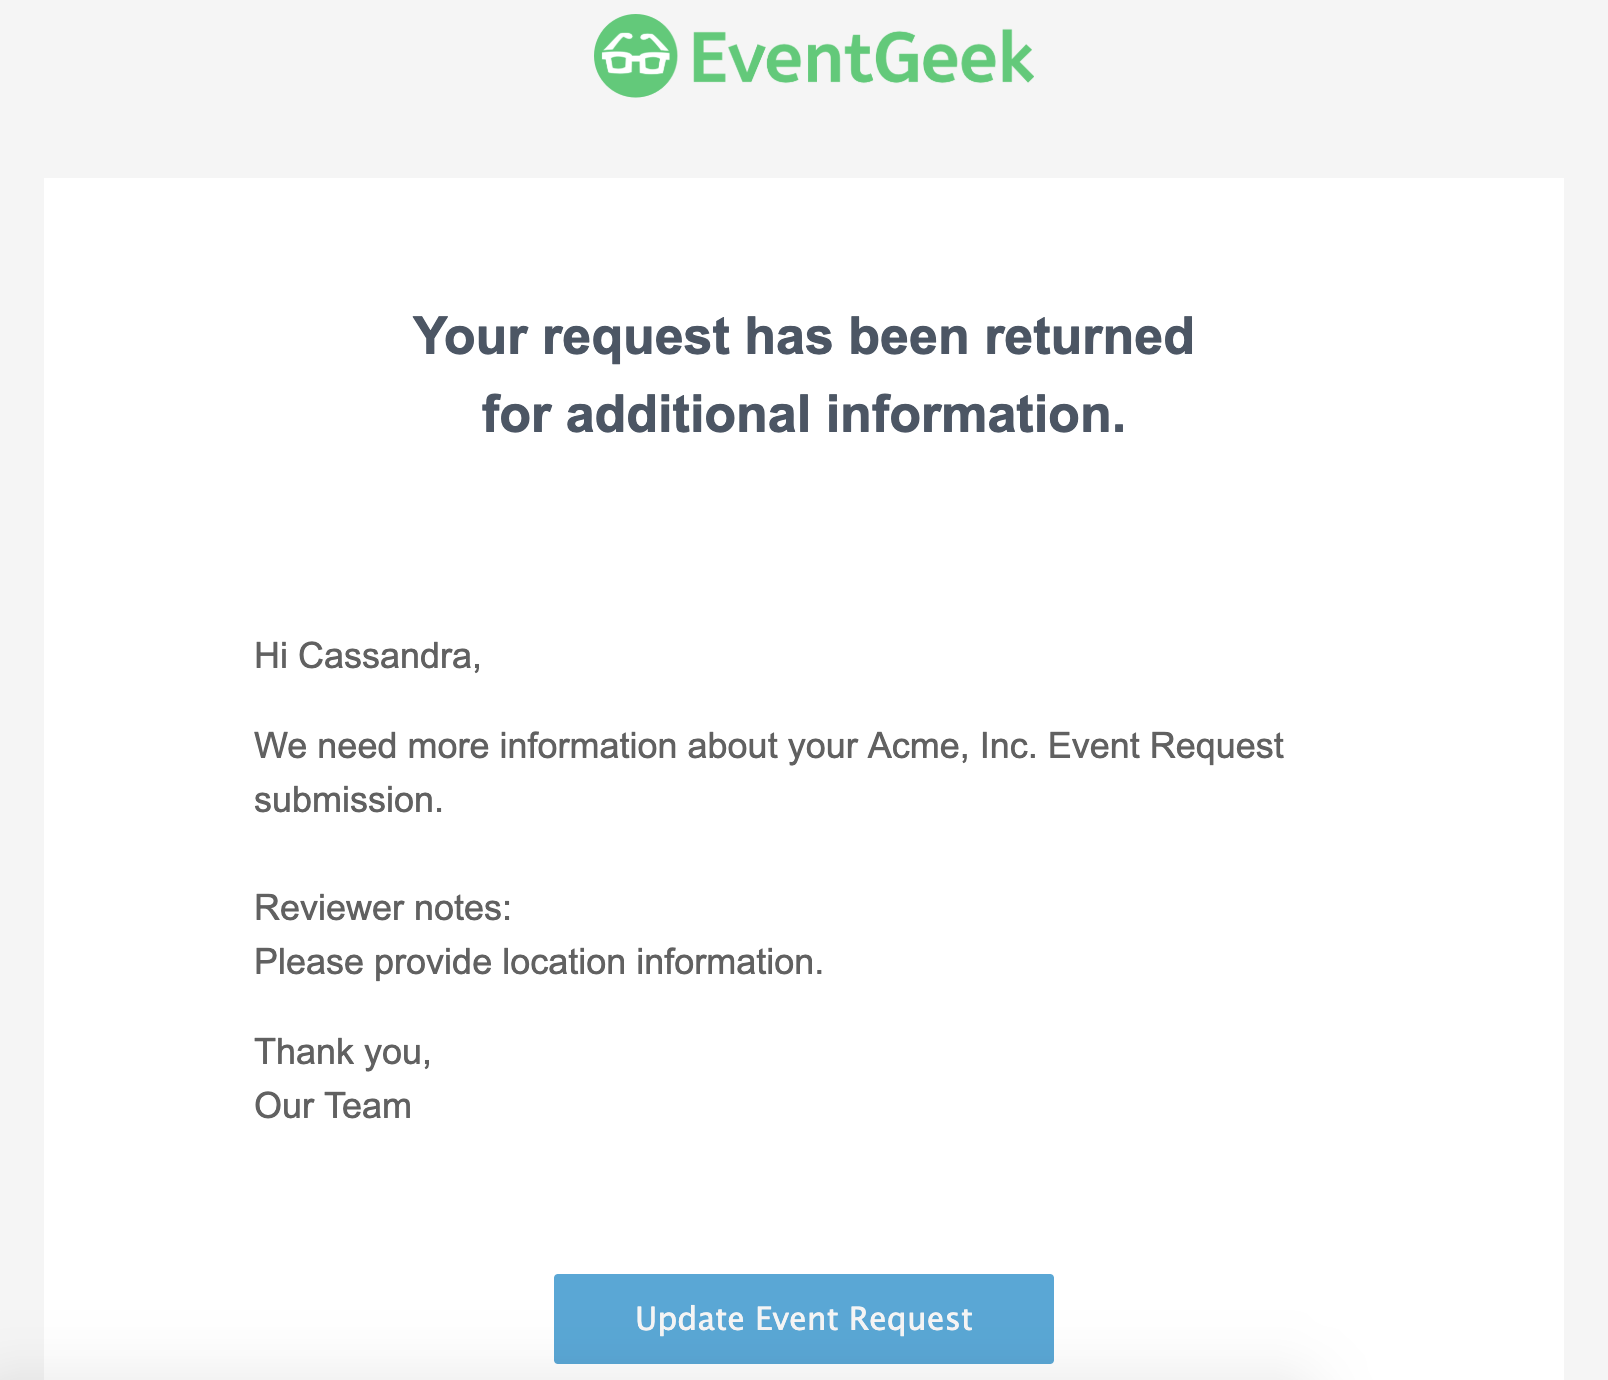 How can I update an Event Request I submitted? - EventGeek